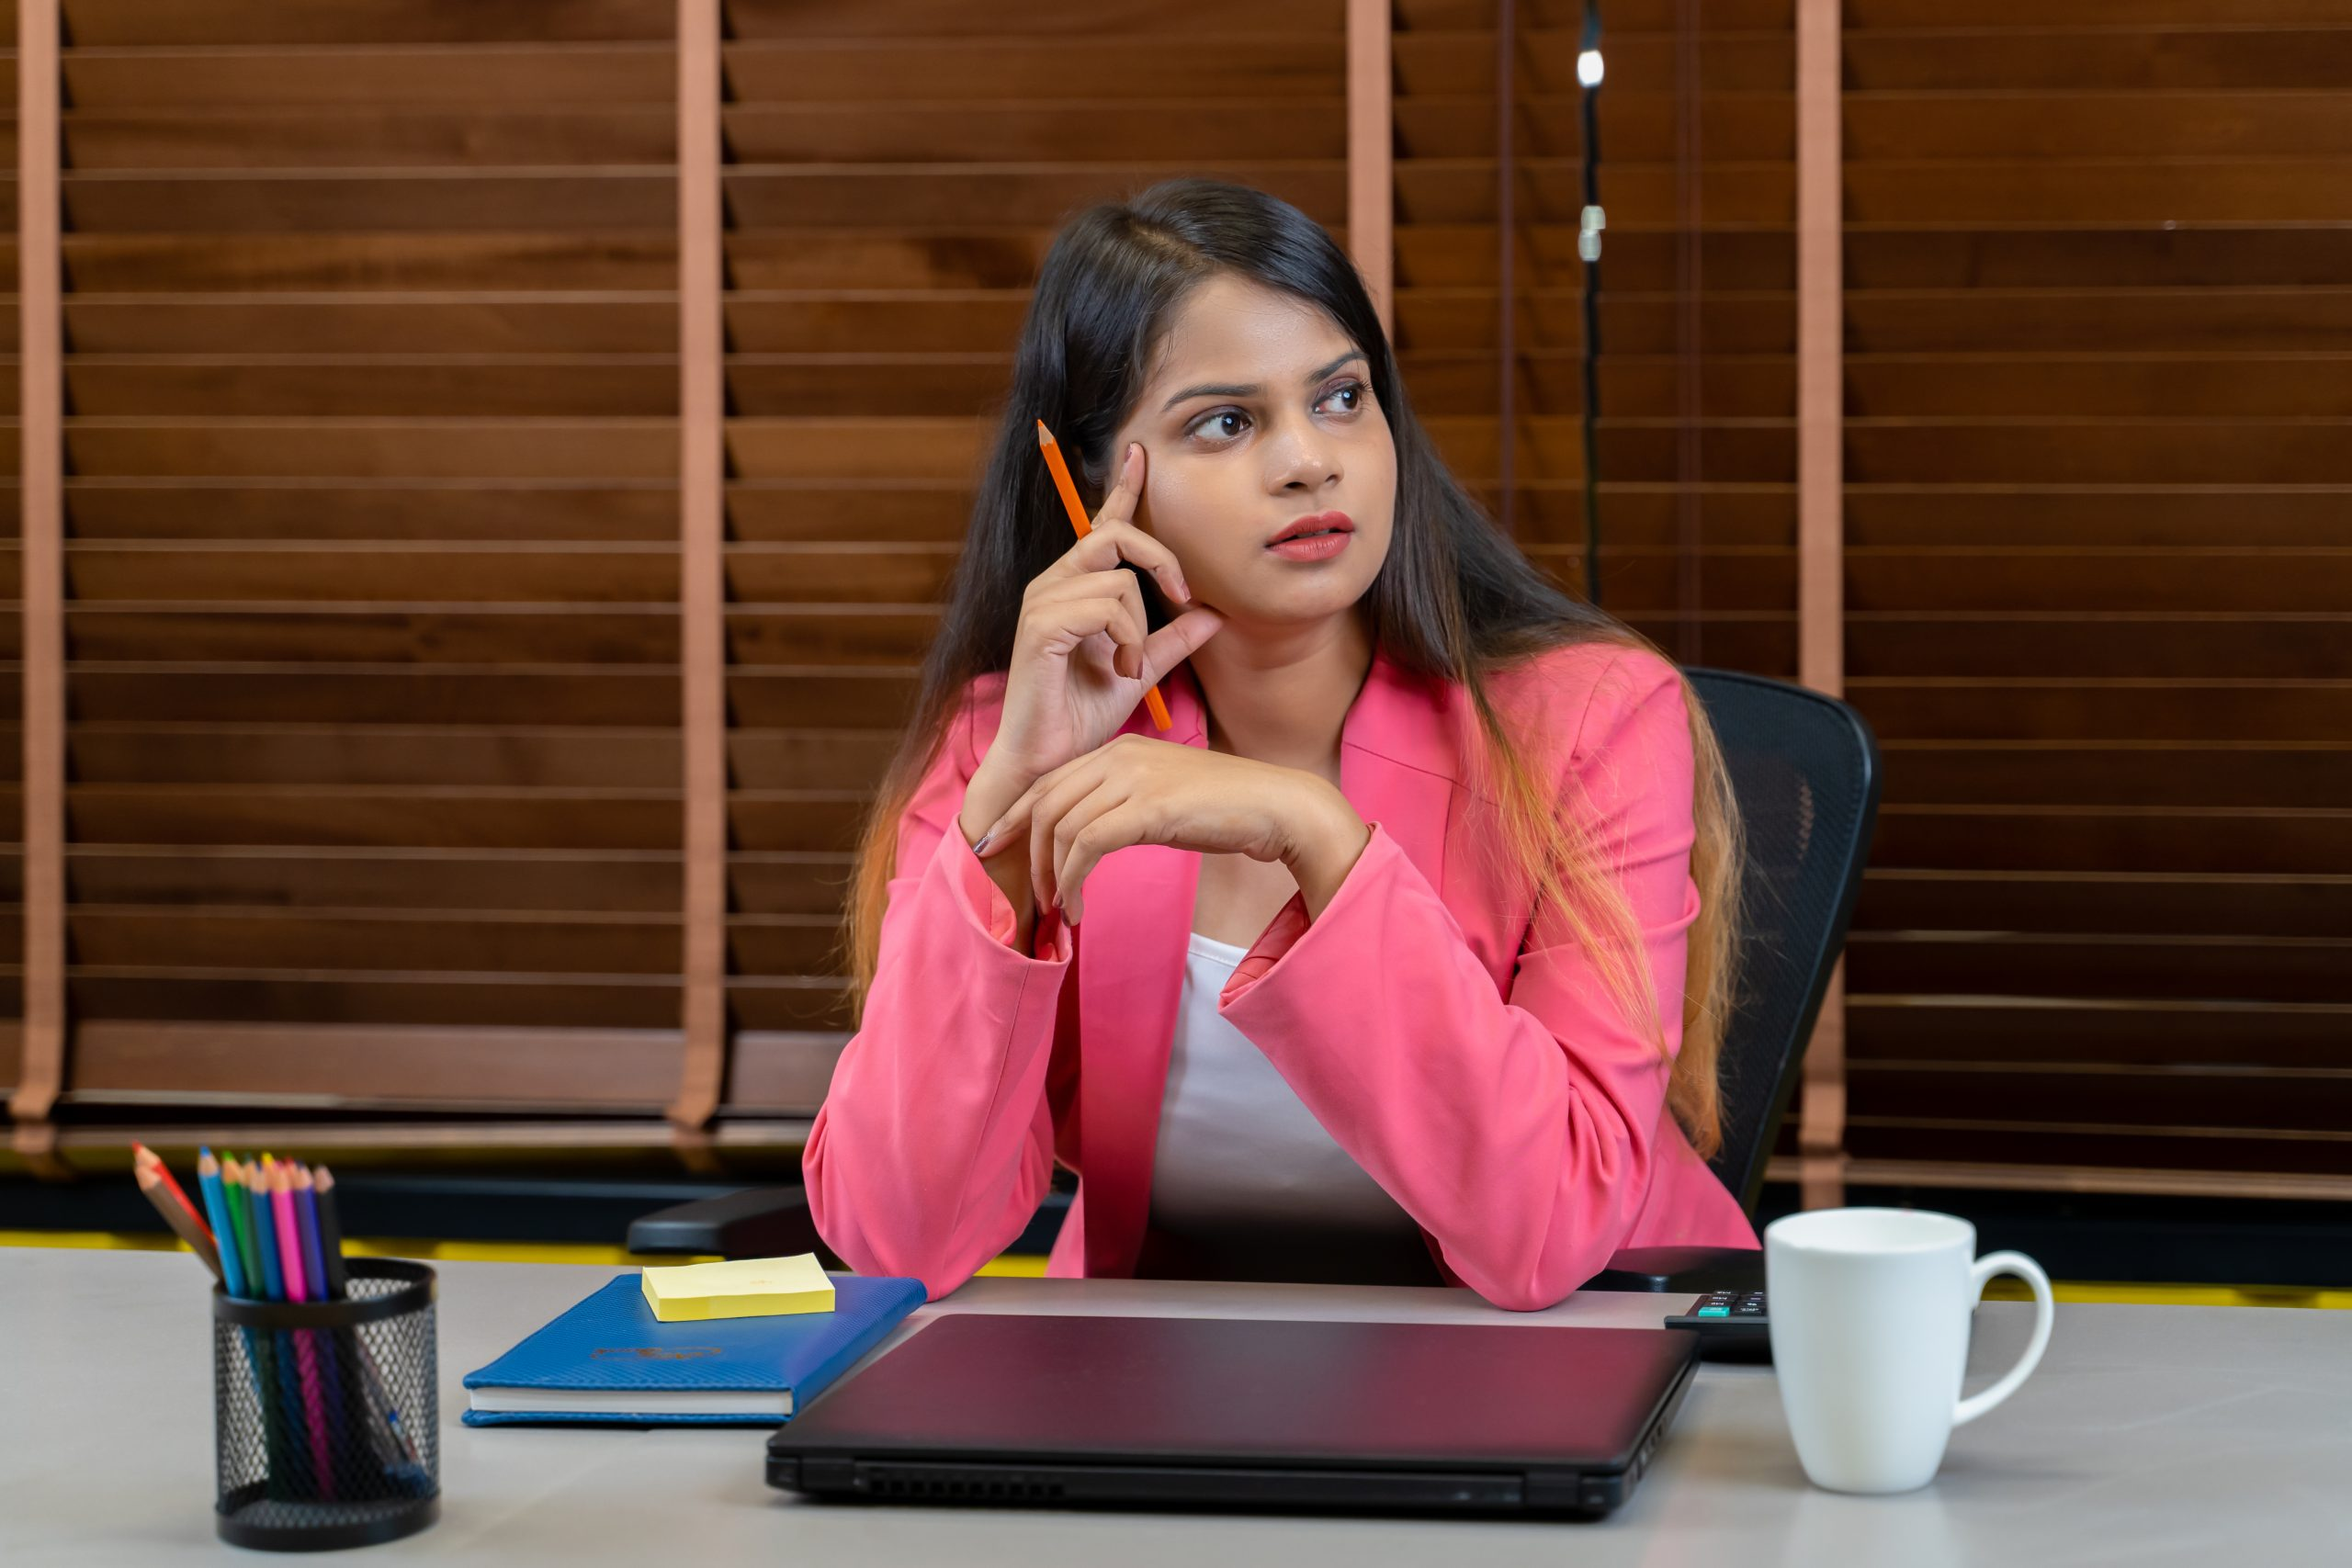 Working woman in a thought